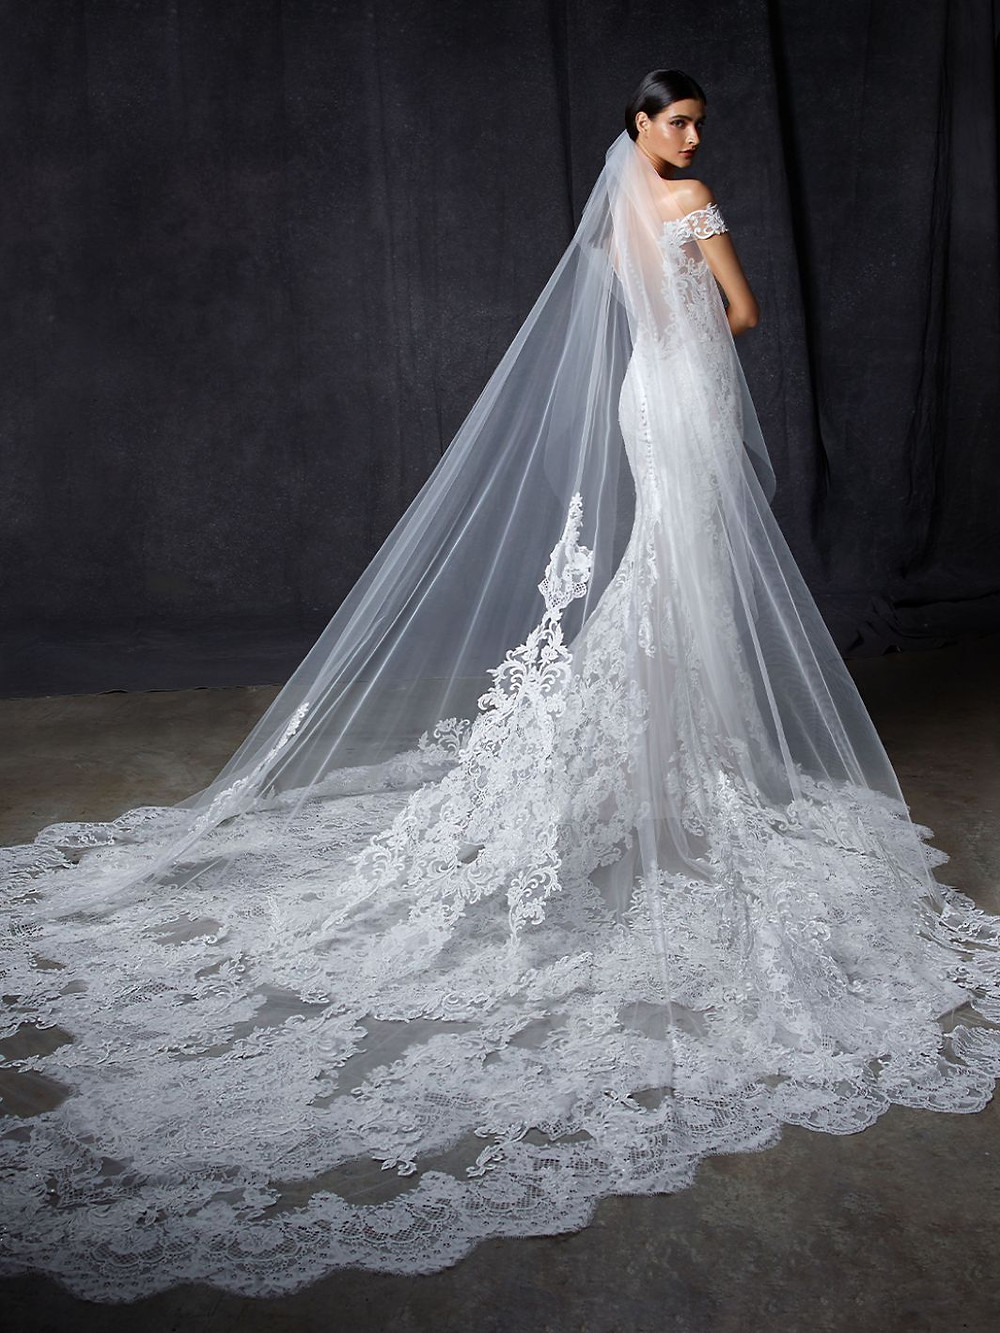 An Enzoani off the shoulder lace mermaid wedding dress with a long train and veil